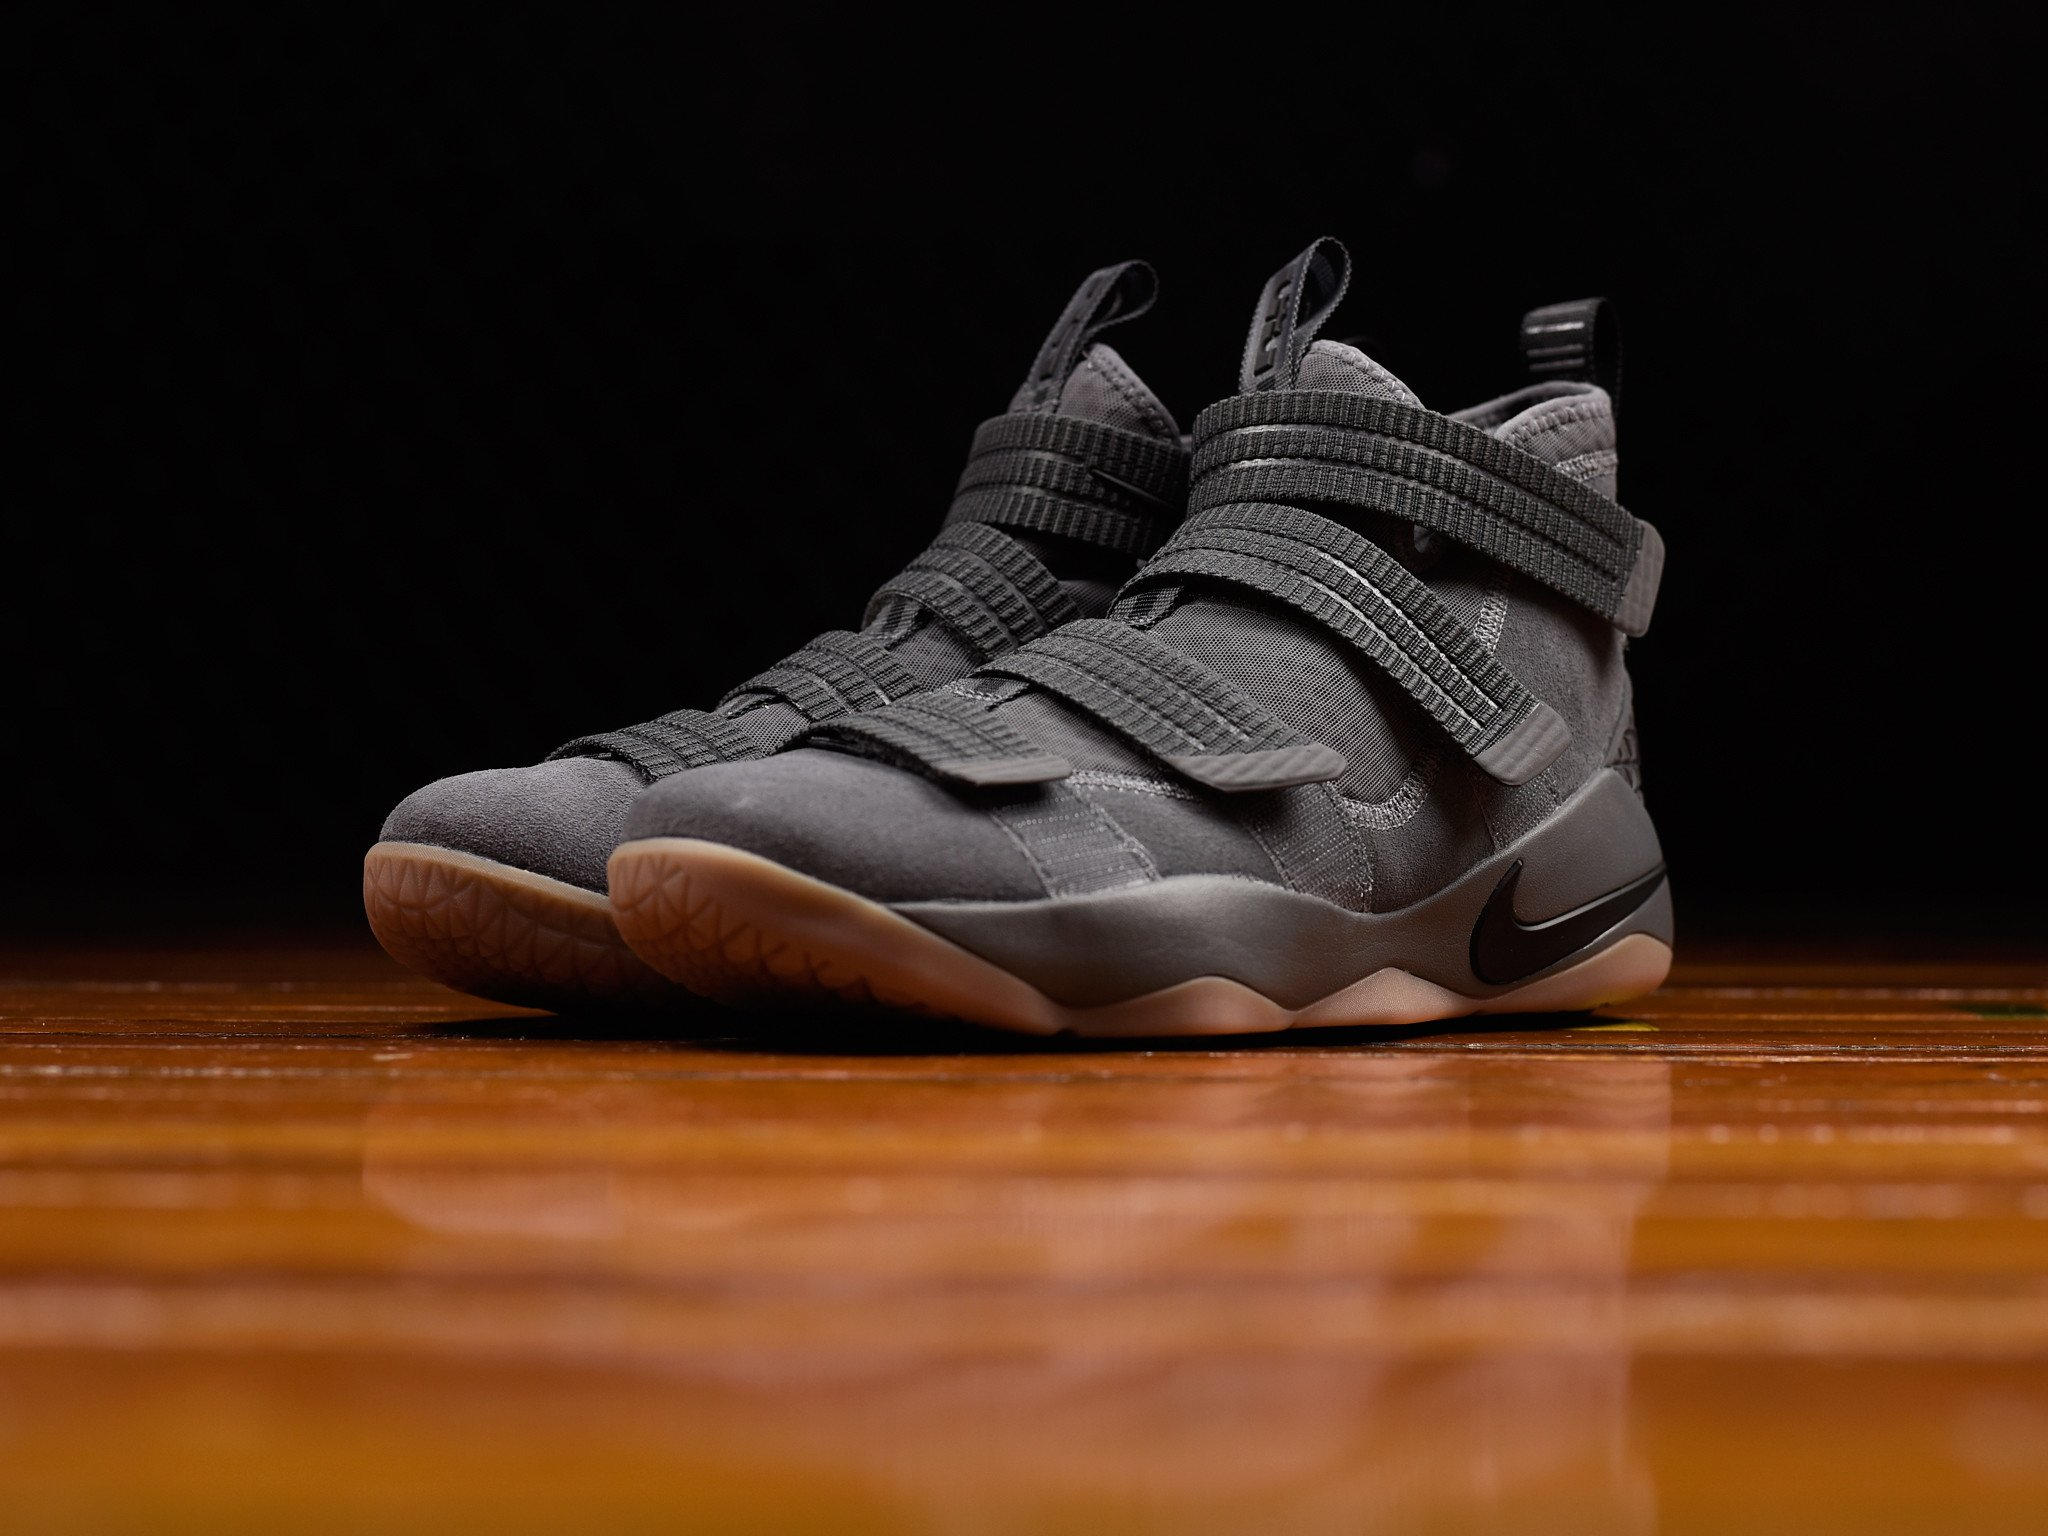 The Nike LeBron Soldier 11 Drops in Grey Gum-2